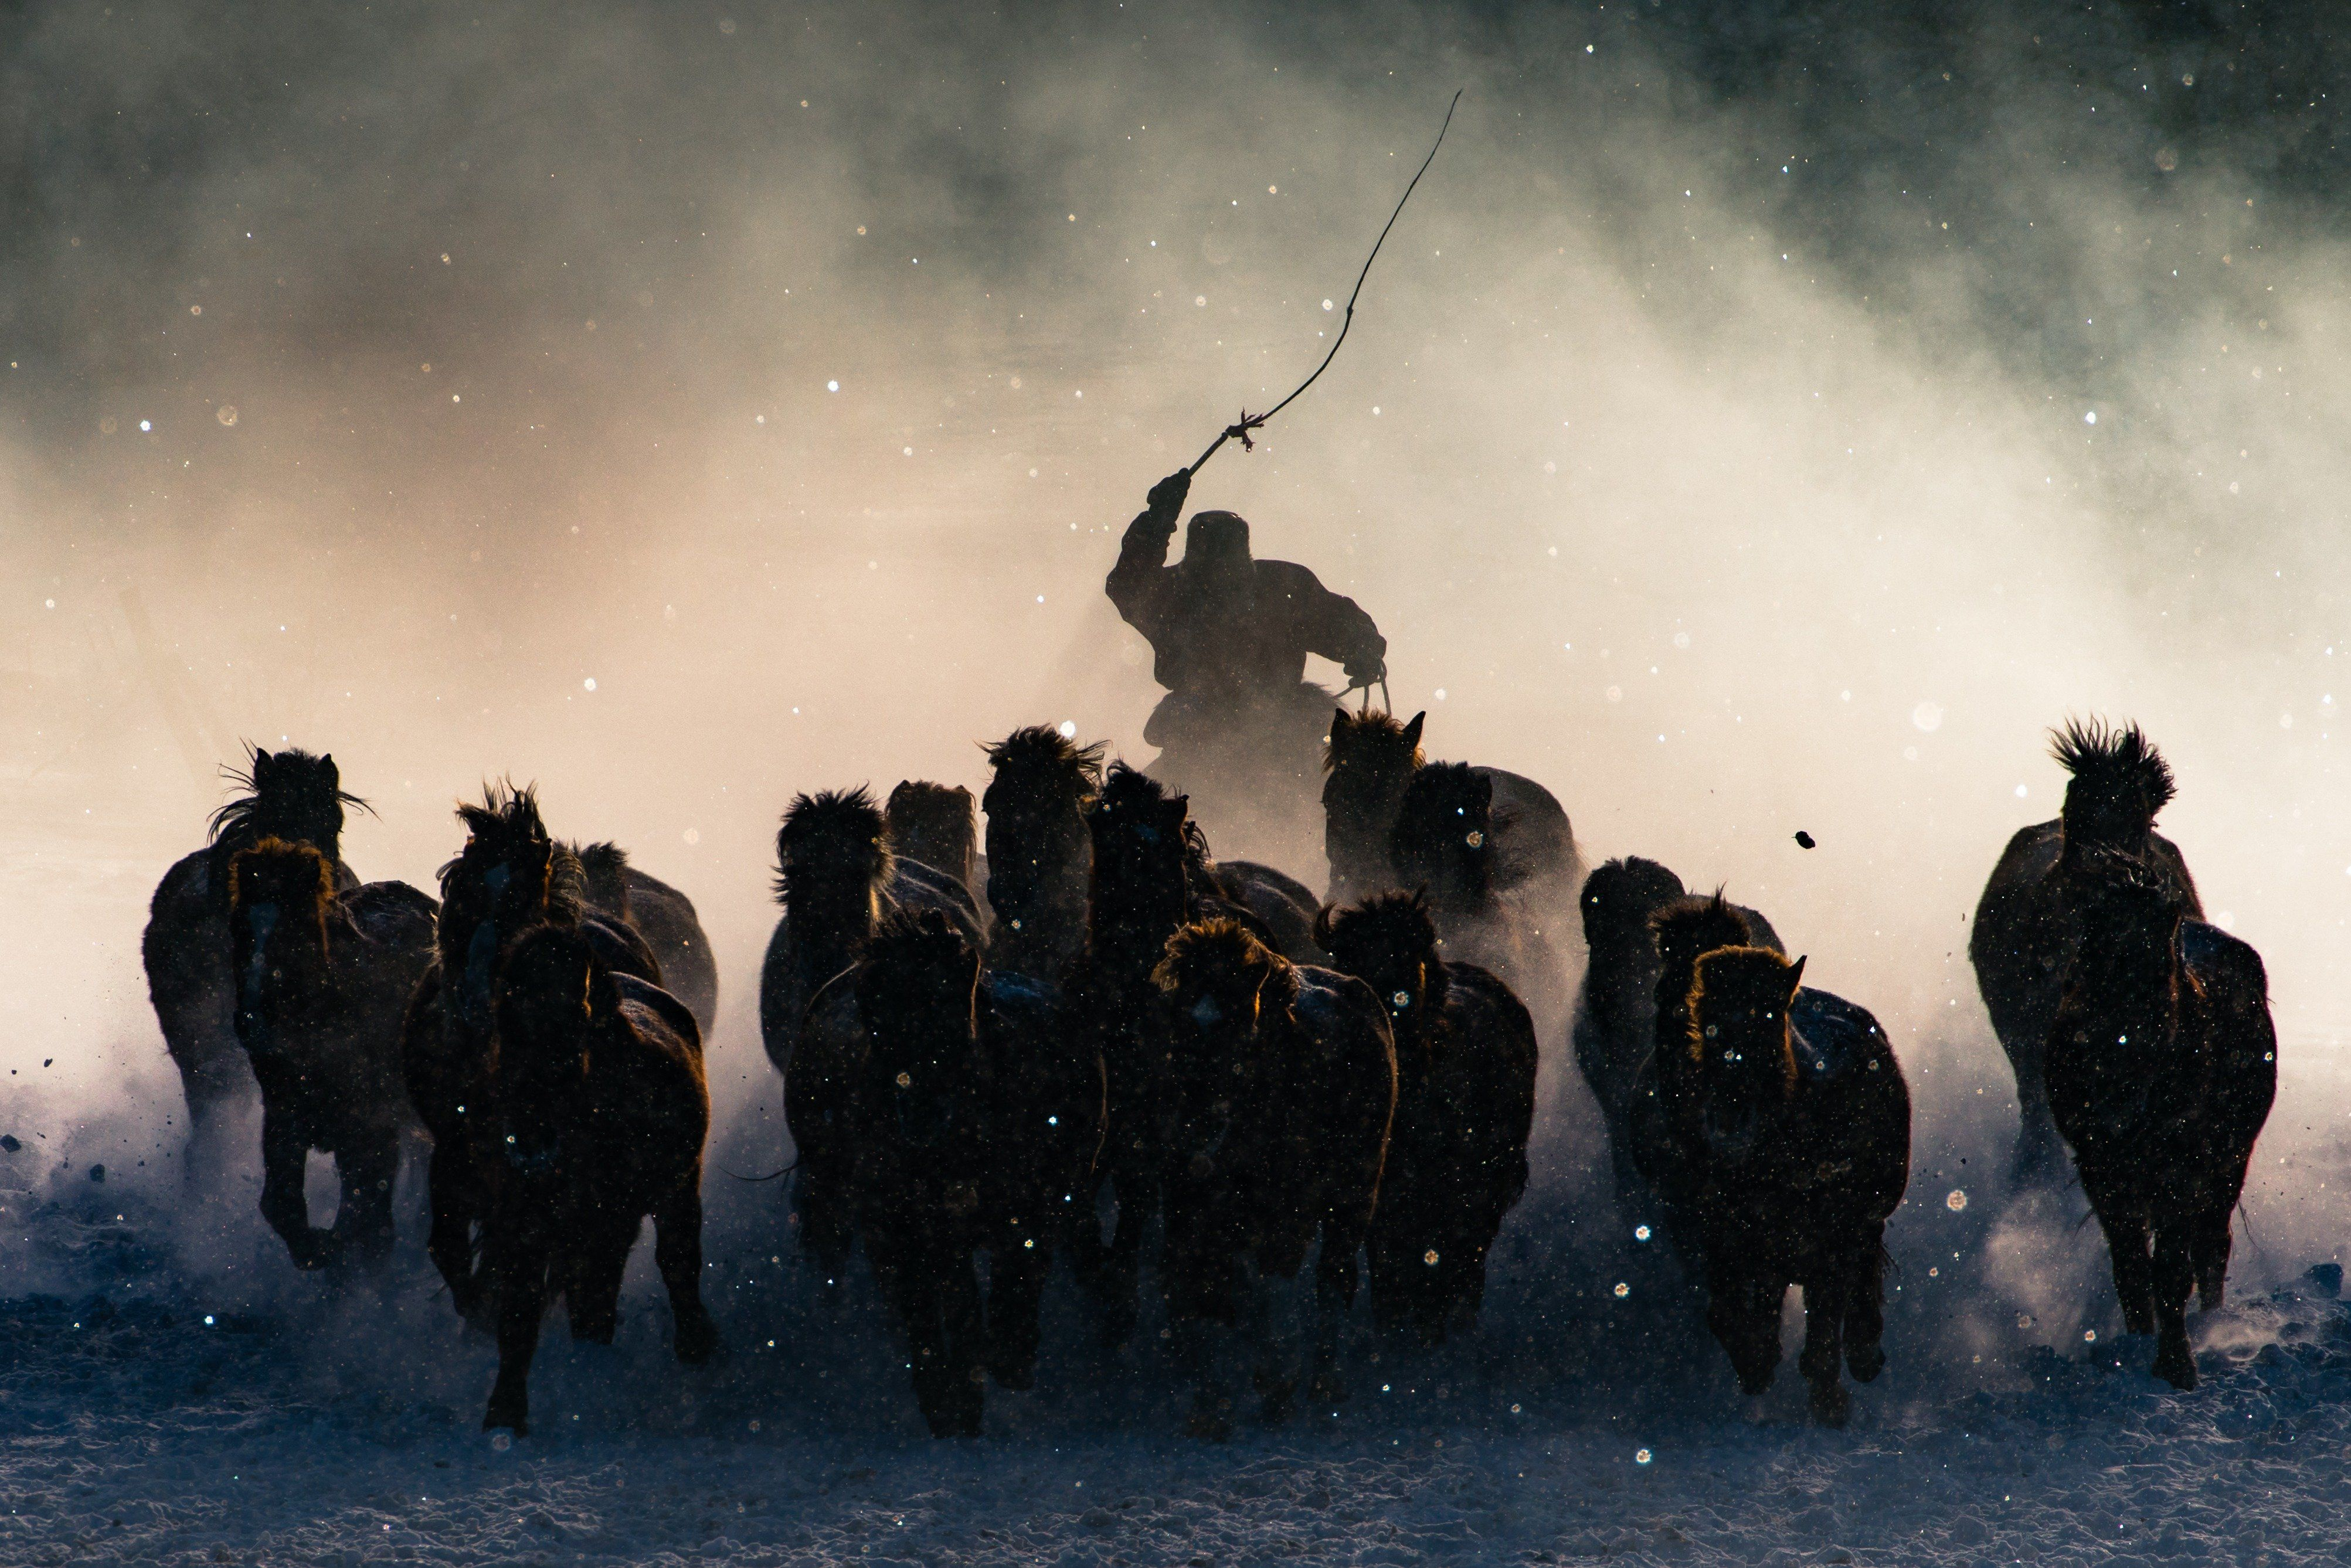 "<strong>Winter Horseman.</strong> Photo and caption by Anthony Lau/<a href=""http://travel.nationalgeographic.com/photographer-of-the-year-2016/"" target=""_blank"">National Geographic Travel Photographer of the Year Contest.</a><i> ""</i>The Winter in Inner Mongolia is very unforgiving. At a freezing temperature of minus twenty and lower with constant breeze of snow from all direction, it was pretty hard to convince myself to get out of the car and take photos. Not until I saw Inner Mongolia horsemen showing off their skills in commanding the steed from a distance, I quickly grab my telephoto lens and capture the moment when one of the horseman charged out from morning mist."""